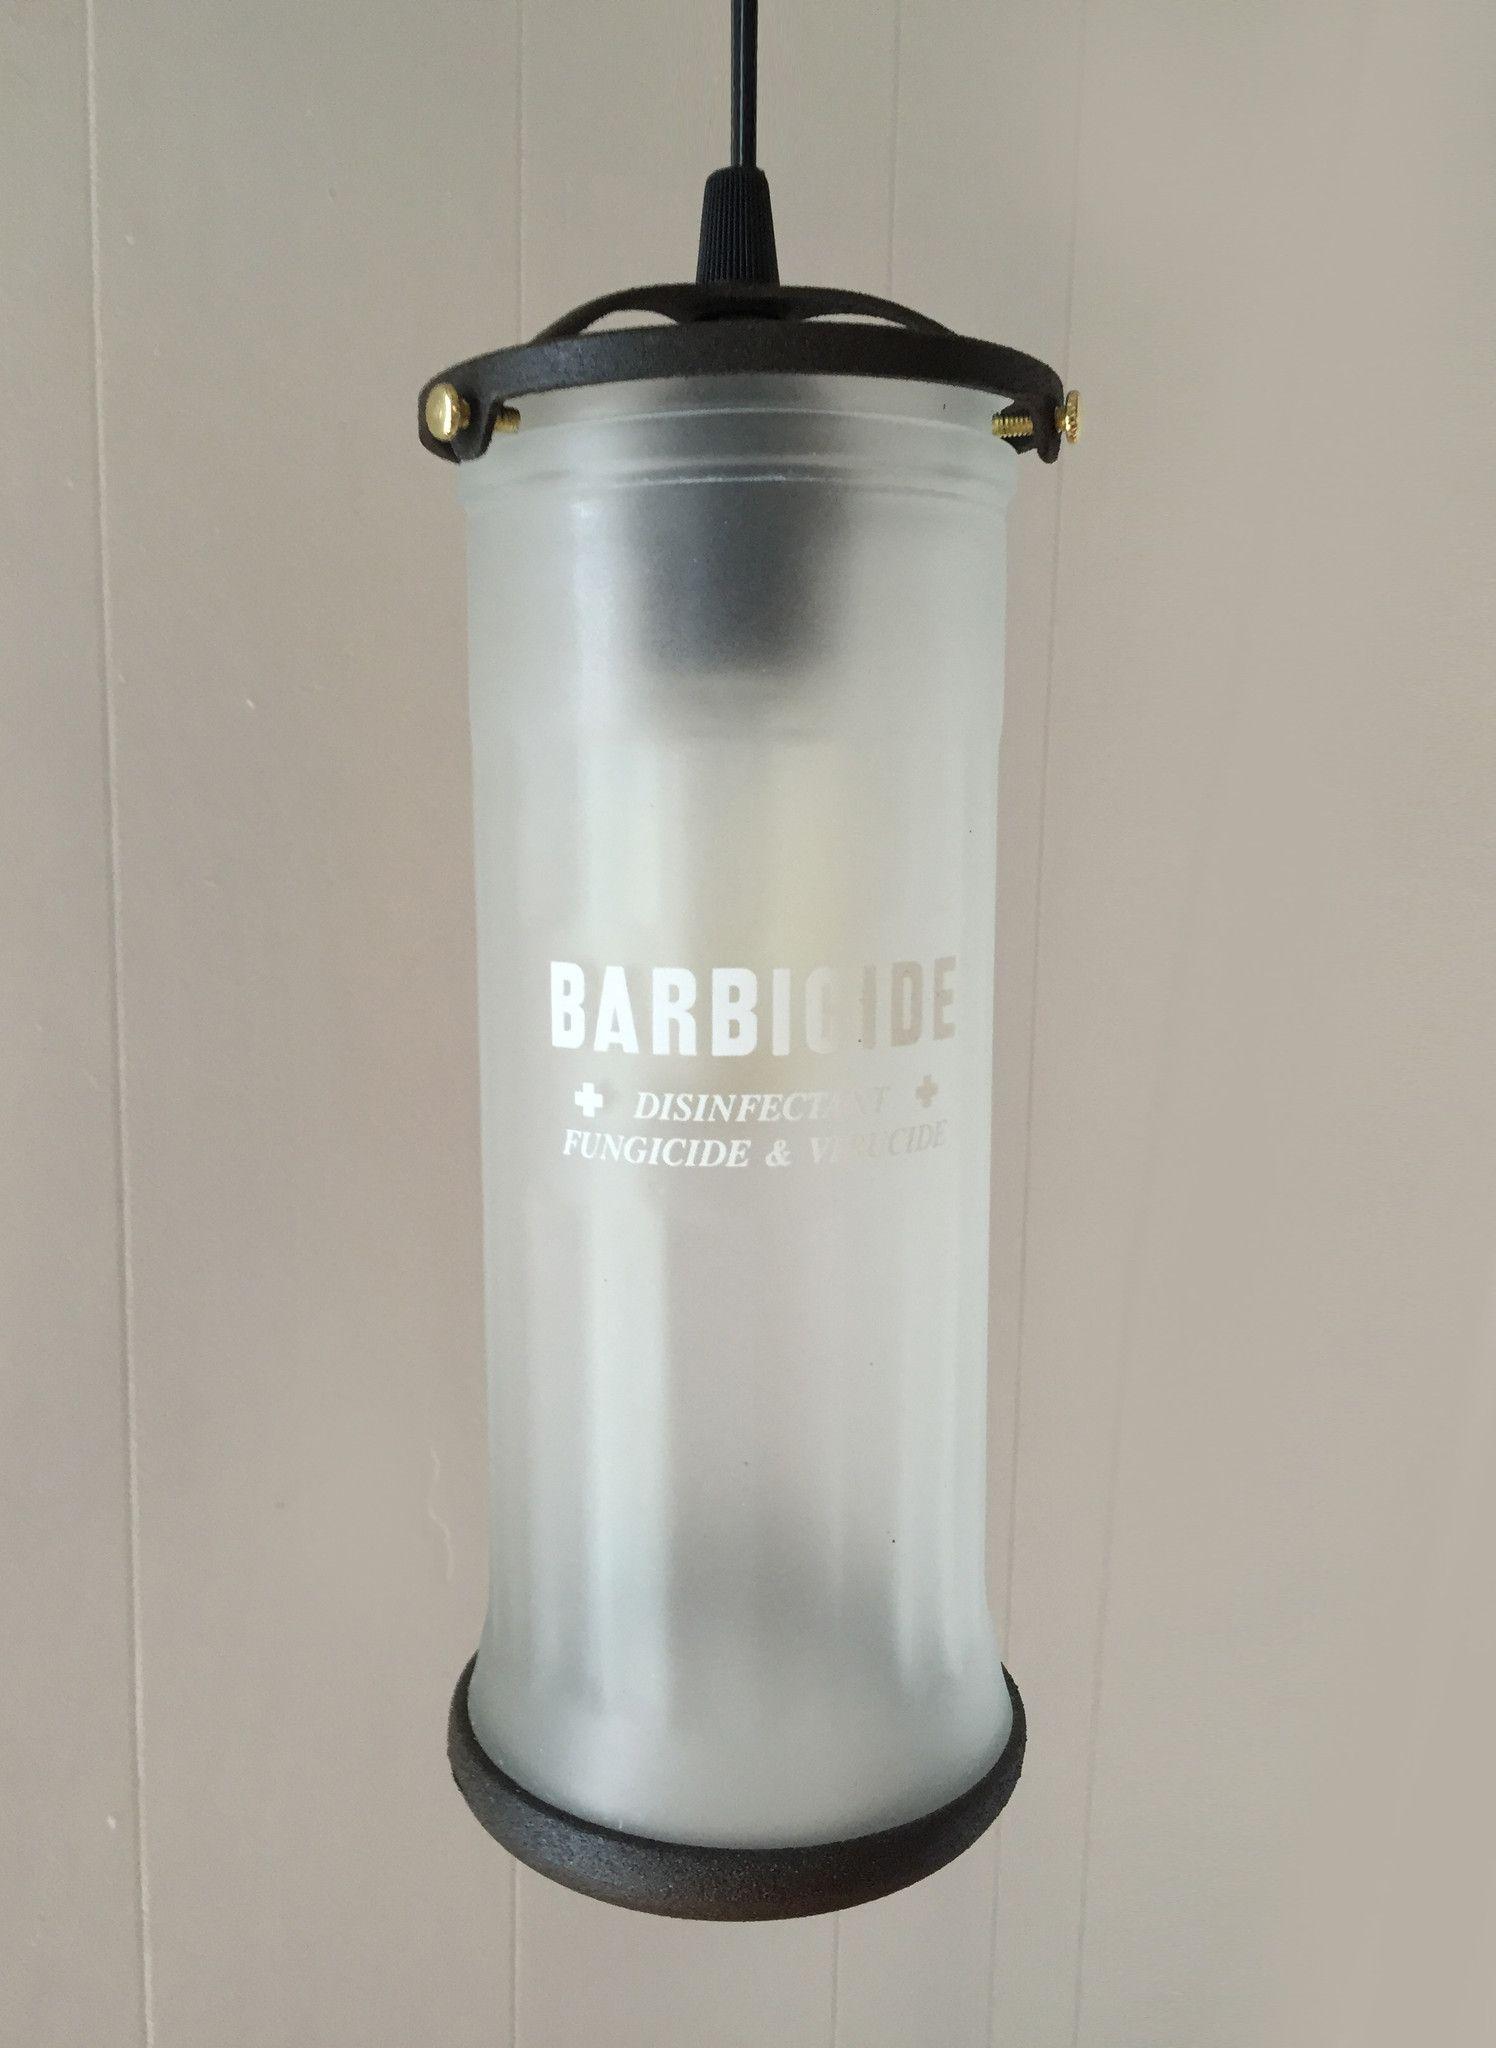 Vintage Barber Jar Pendant Lamp | October Design Co. #barbicide #barbershop #beard #hair